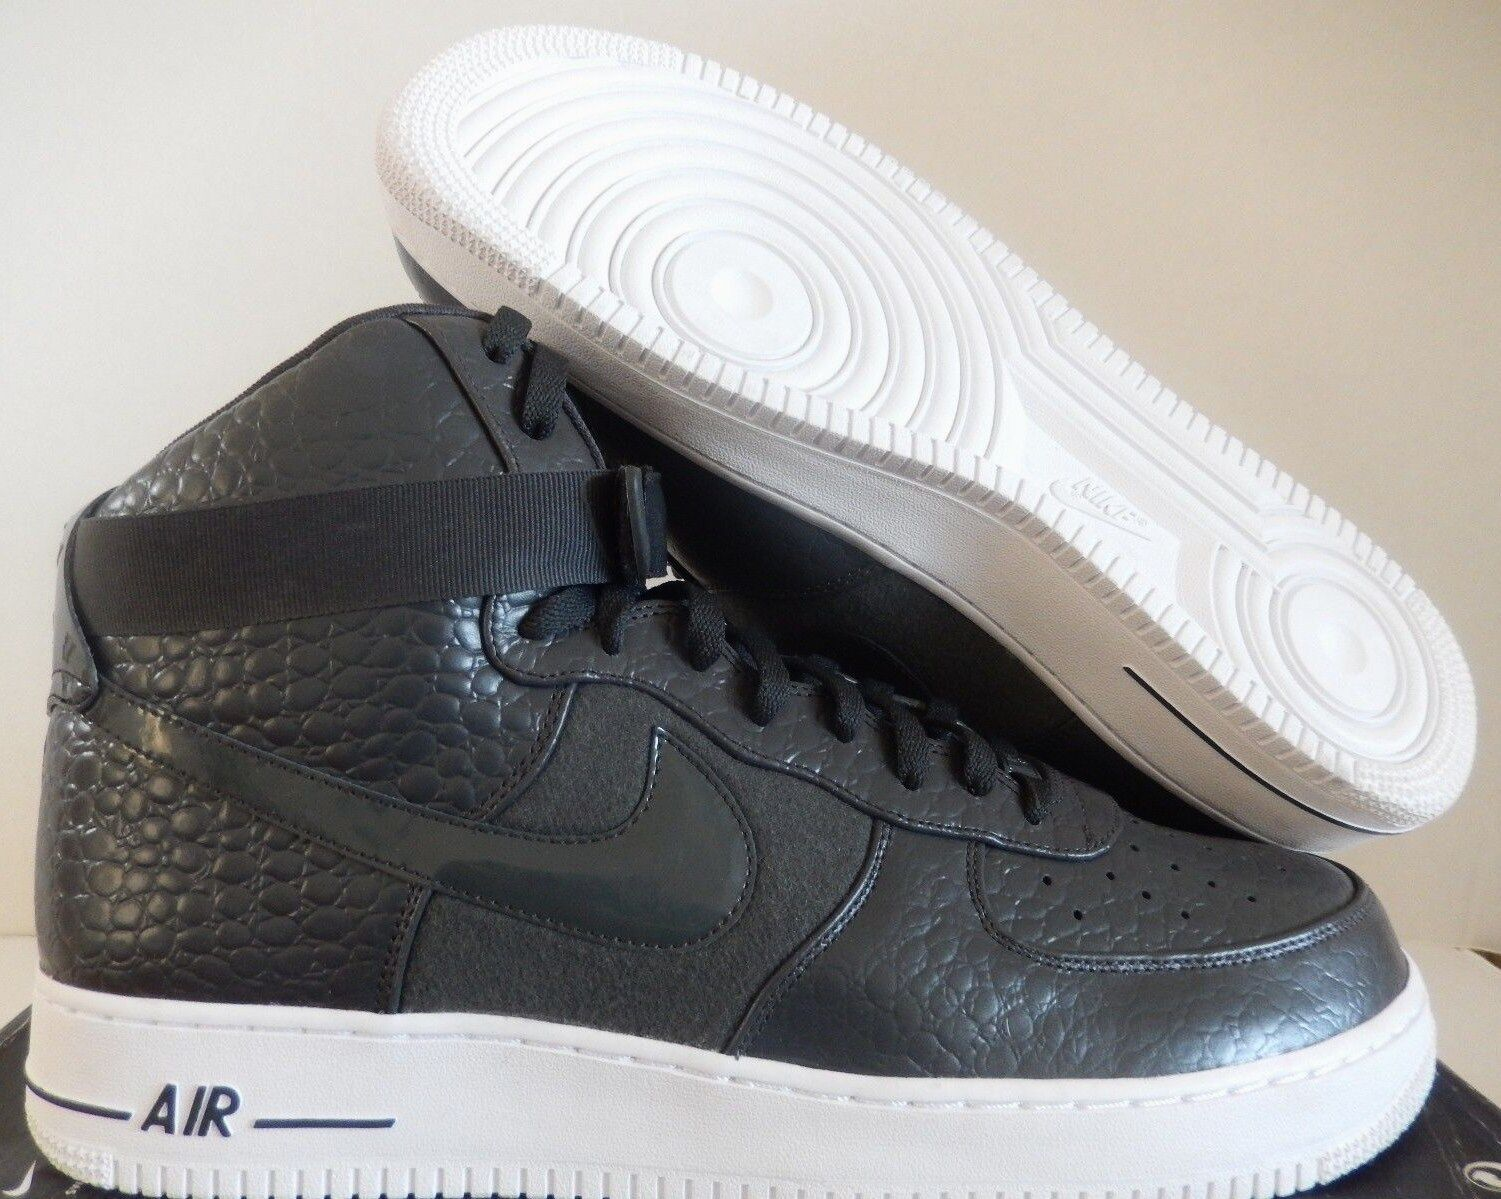 NIKE AIR FORCE 1 HIGH PREMIUM LE DARK SHADOW-WHITE SZ 14